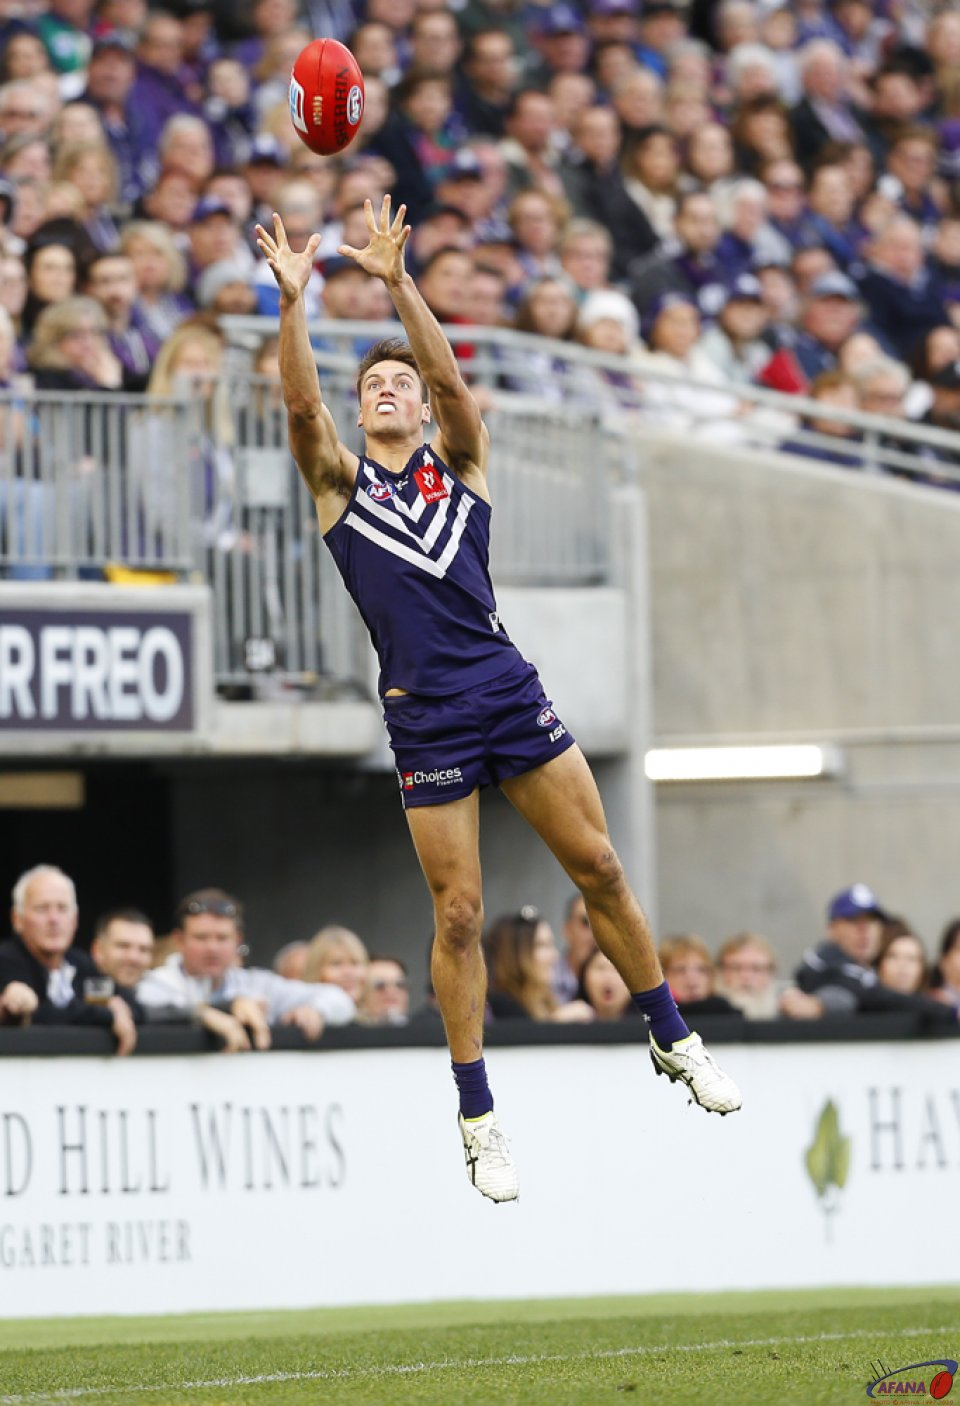 AFL Fremantle v Port Power, Round 13, Optus Stadium.